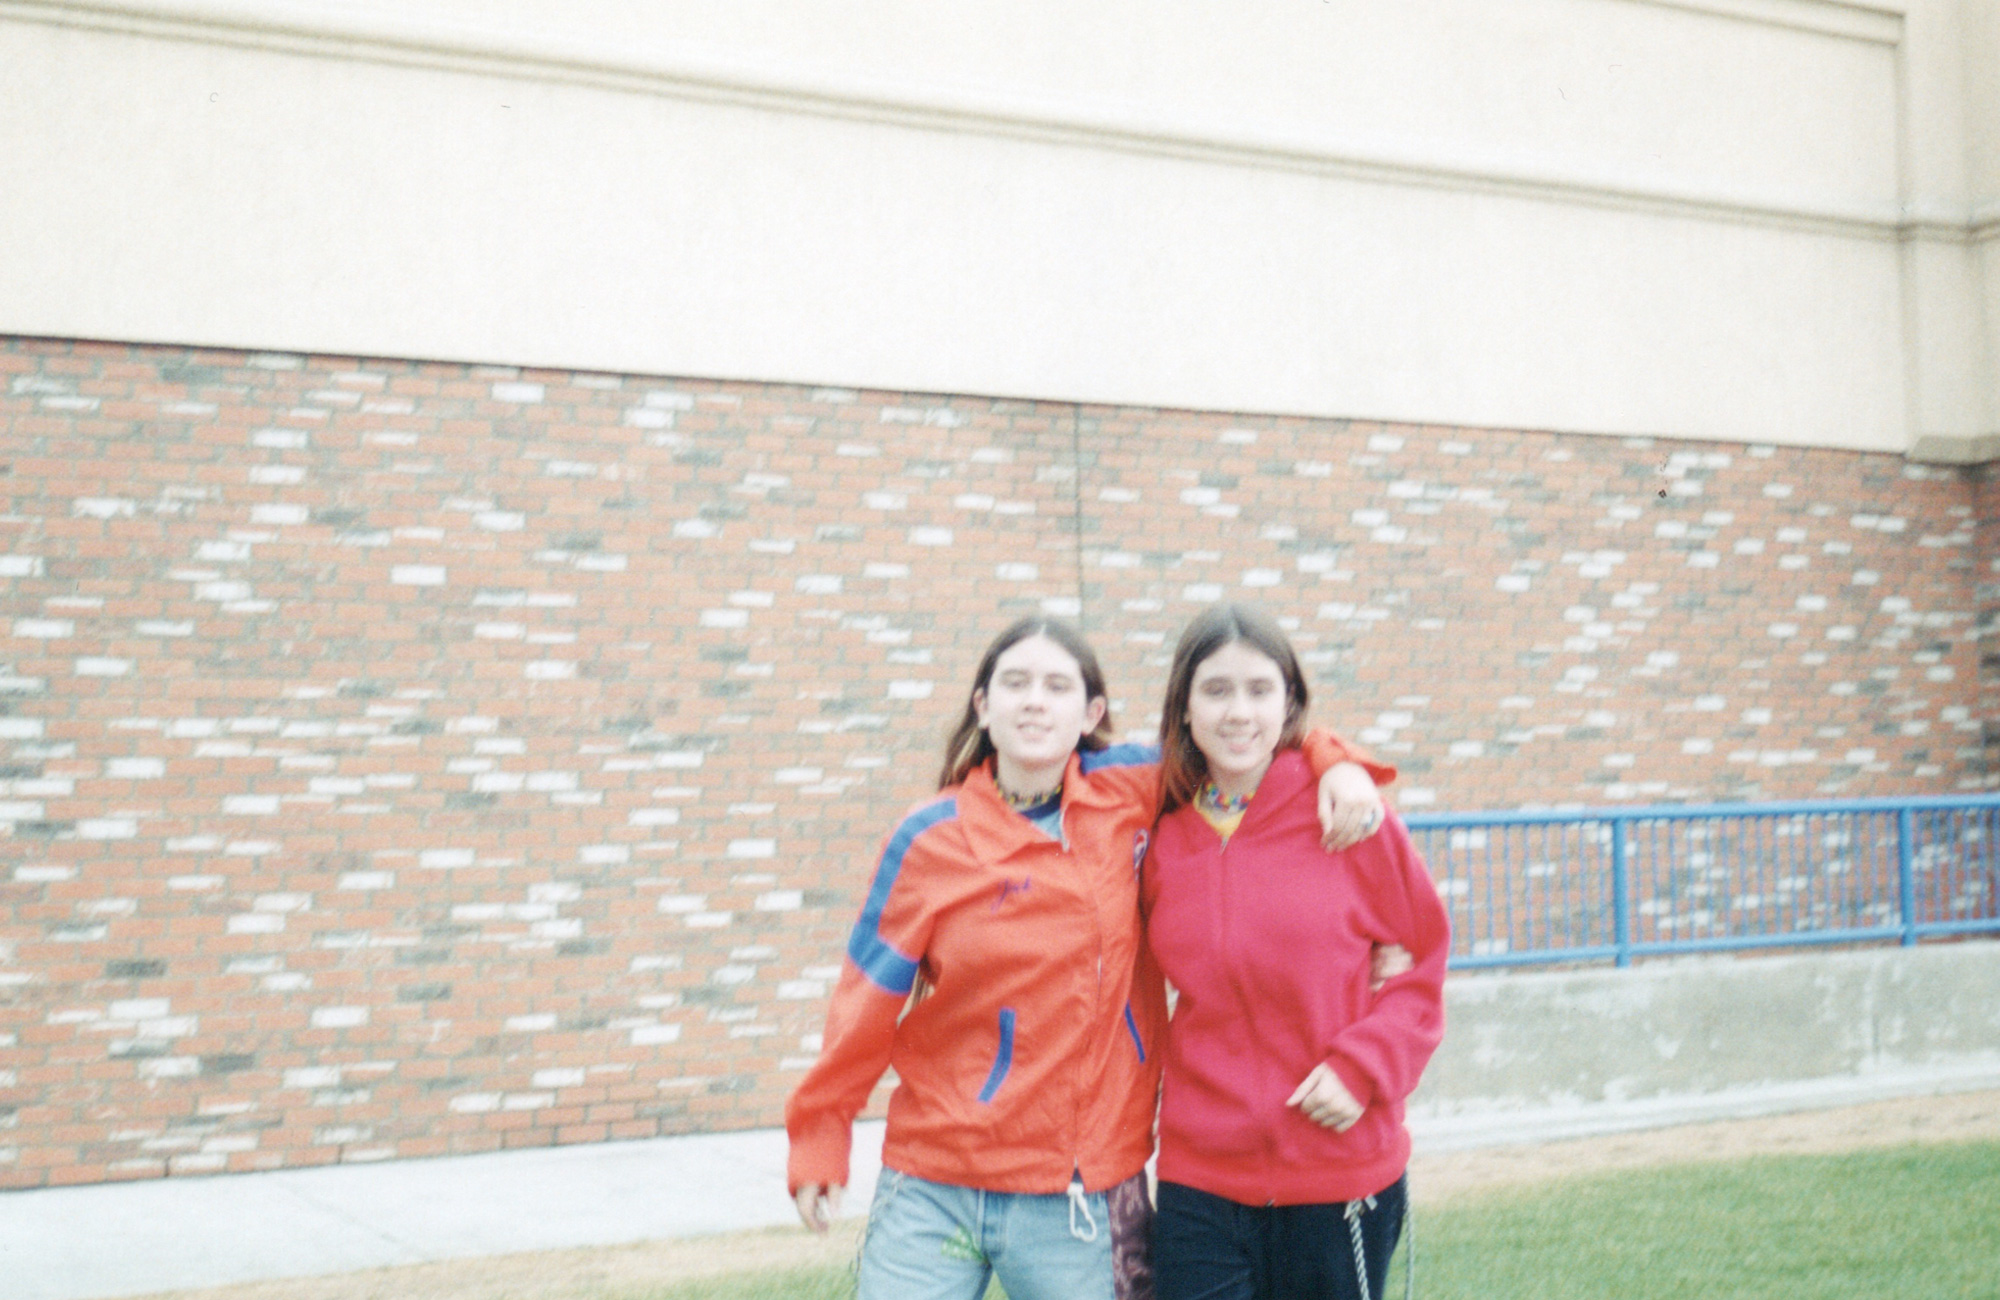 Tegan and Sara in front of a high school